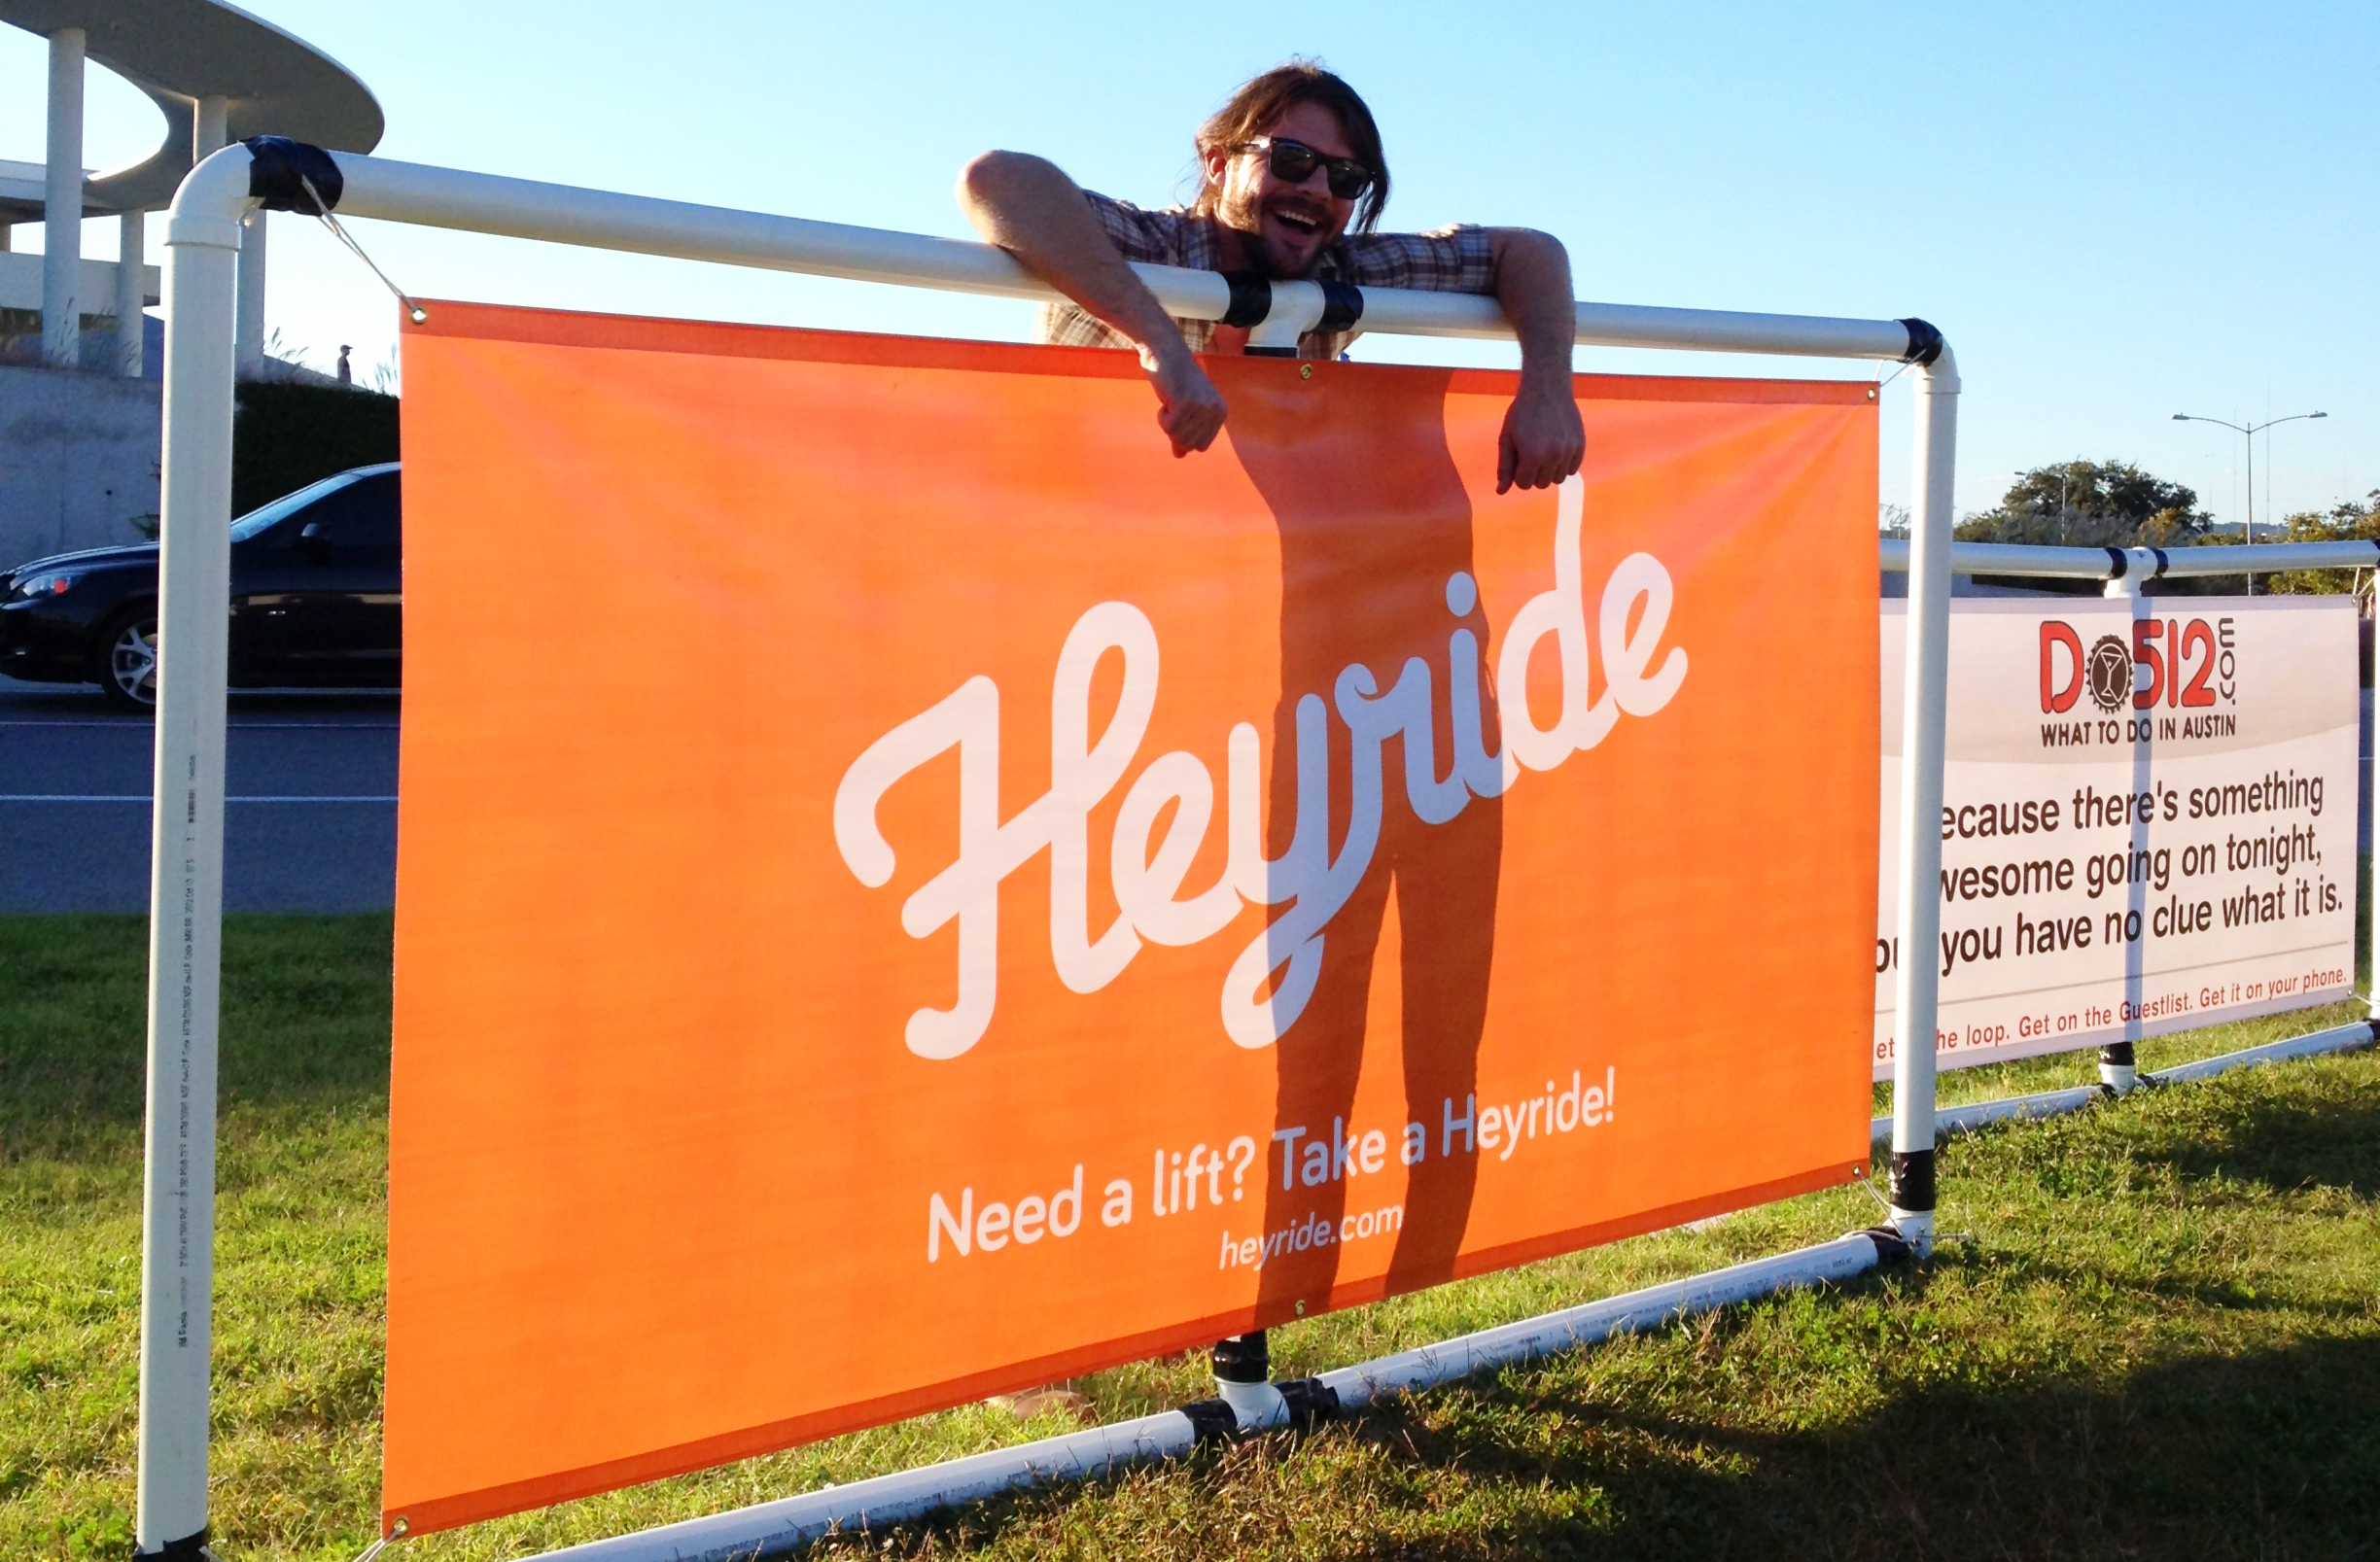 Josh posing with the Heyride banner at FunFunFun Fest.